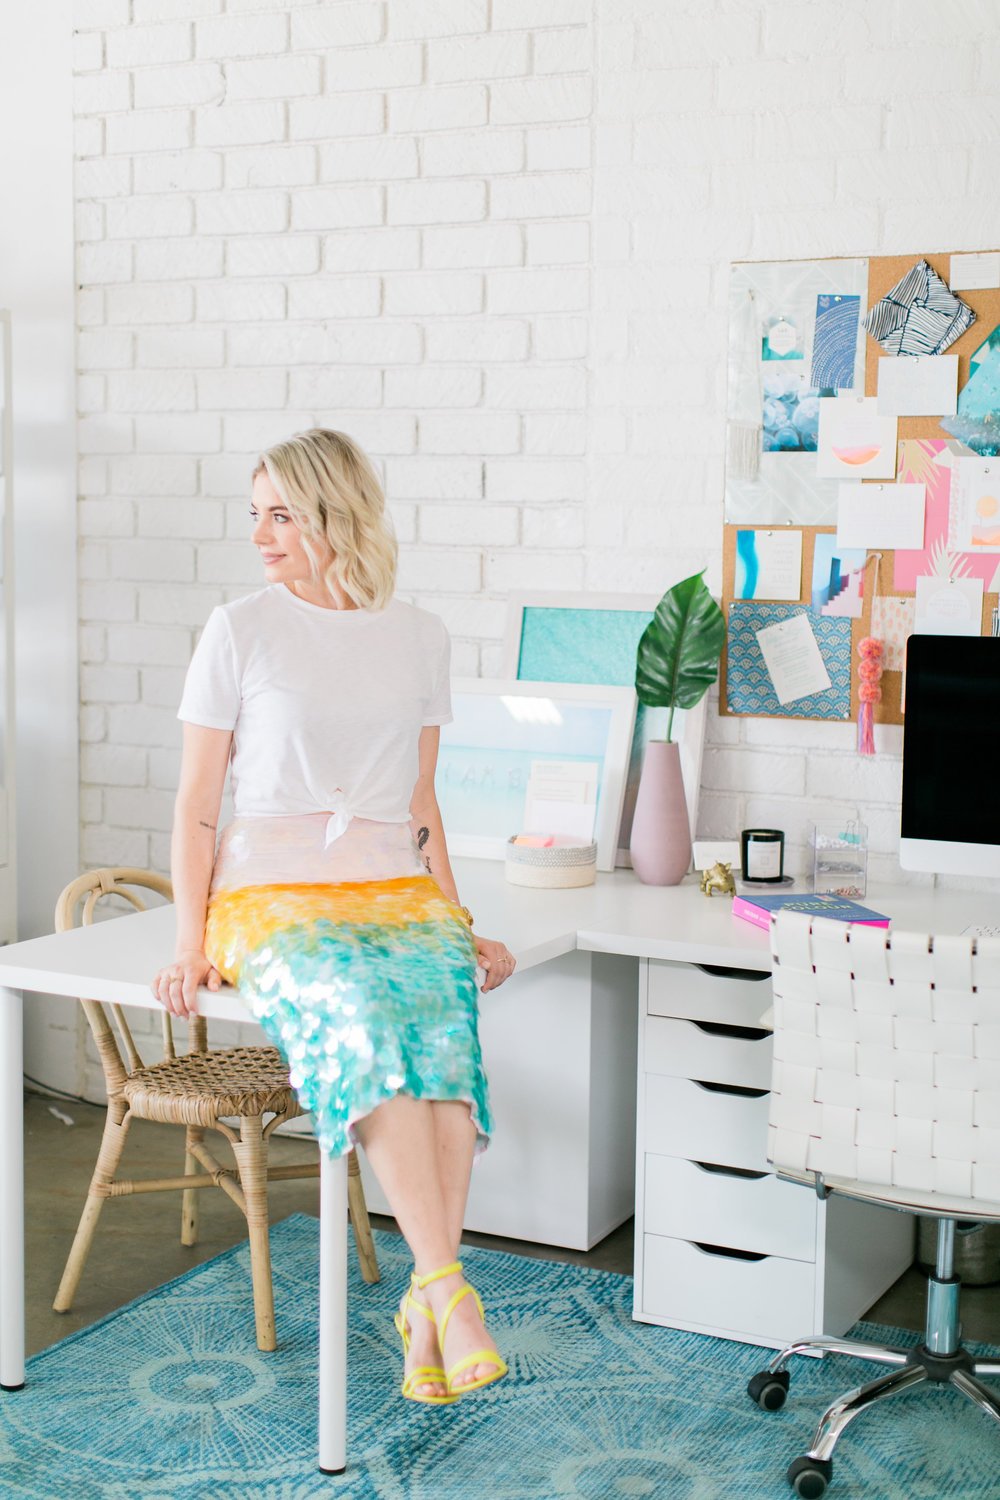 Studio Conversation:  Britt Rohr of Swell Press Paper - Photographed by Courtney Ray